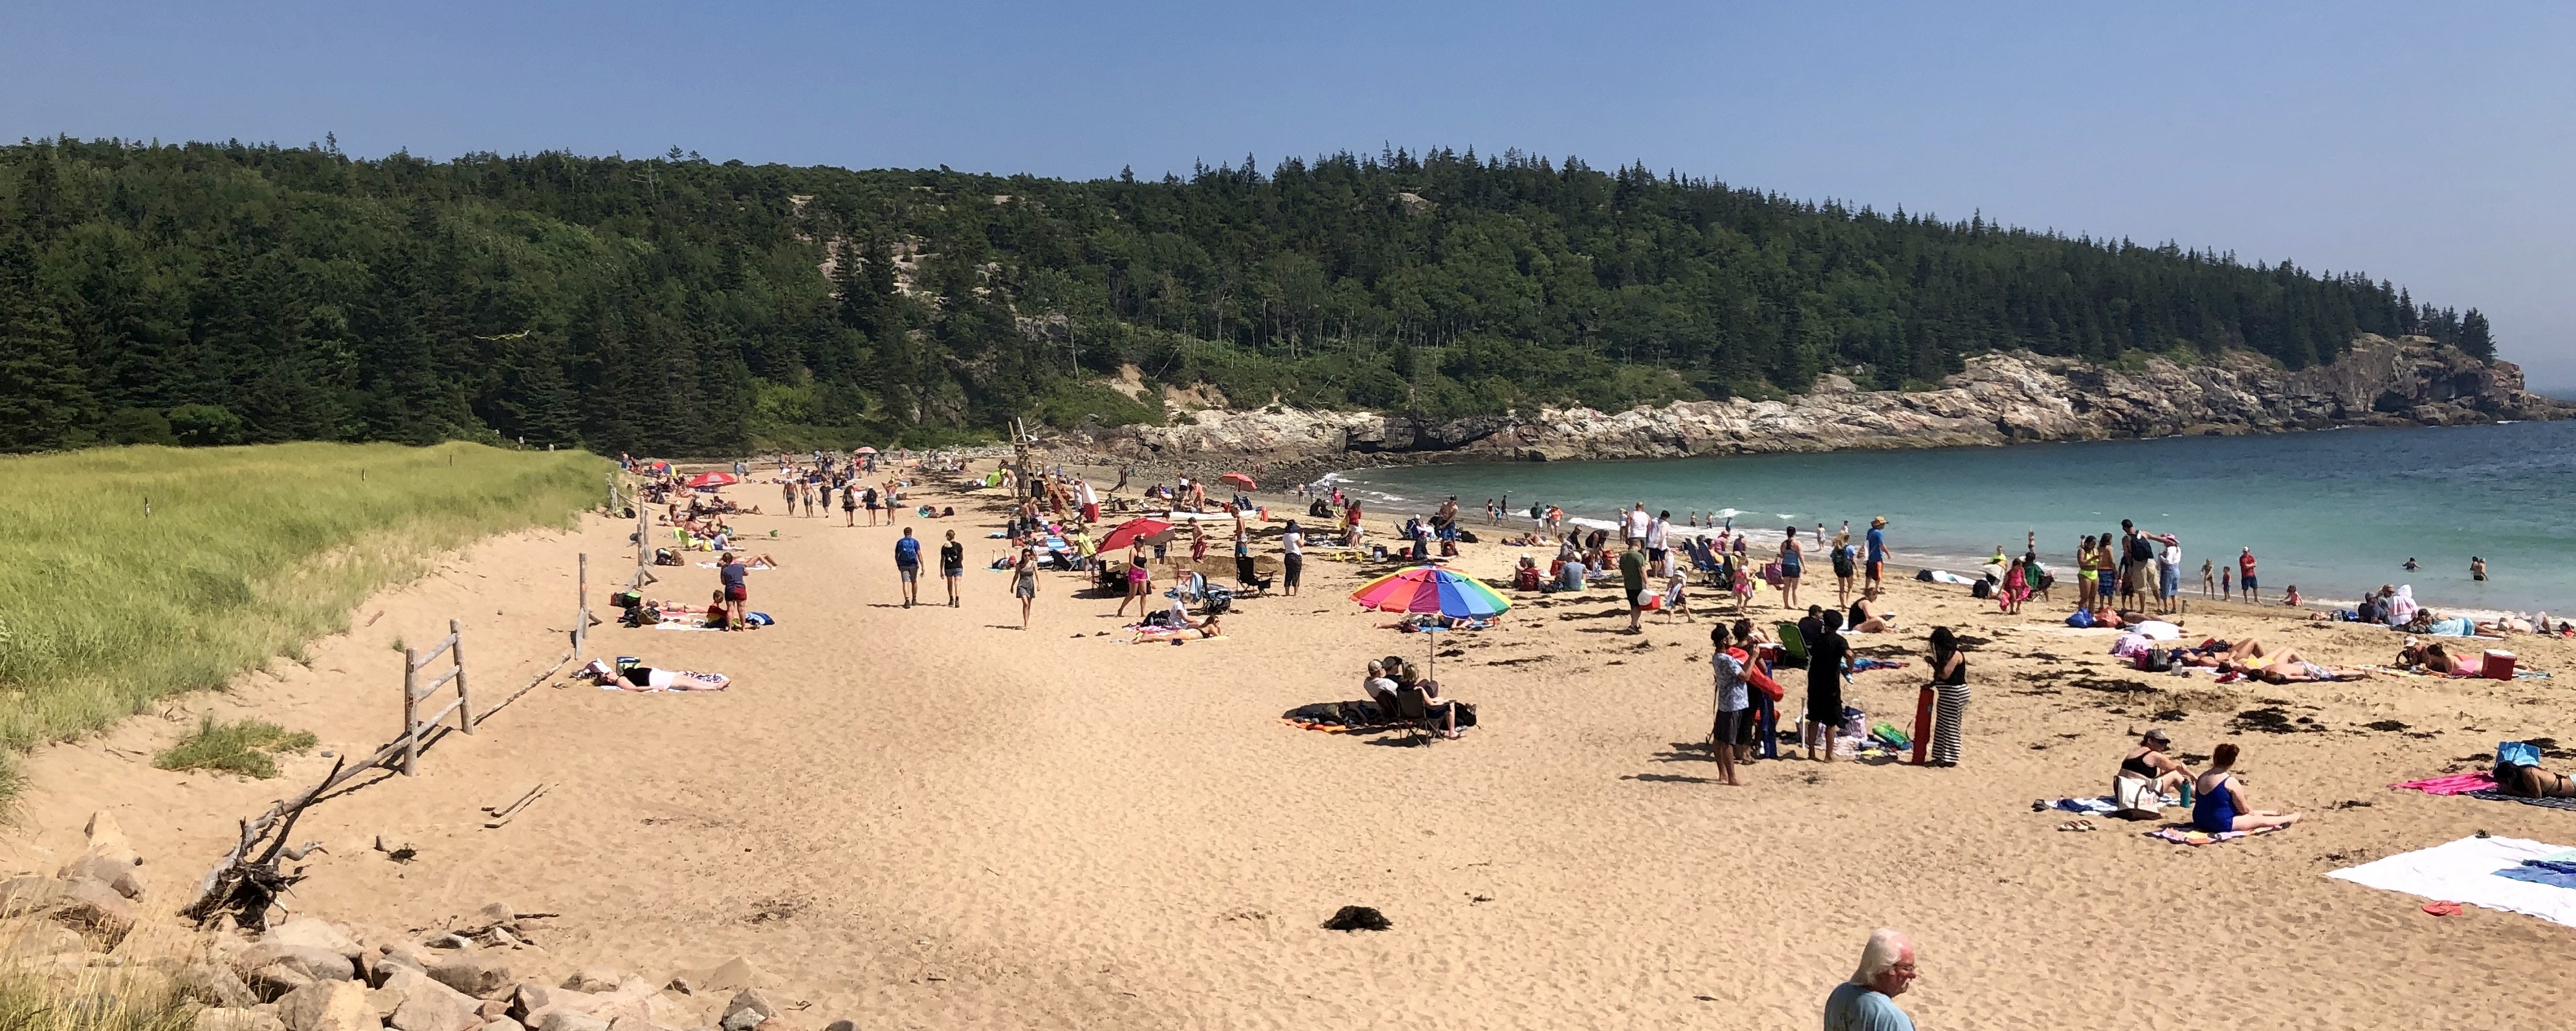 sand beach crowd